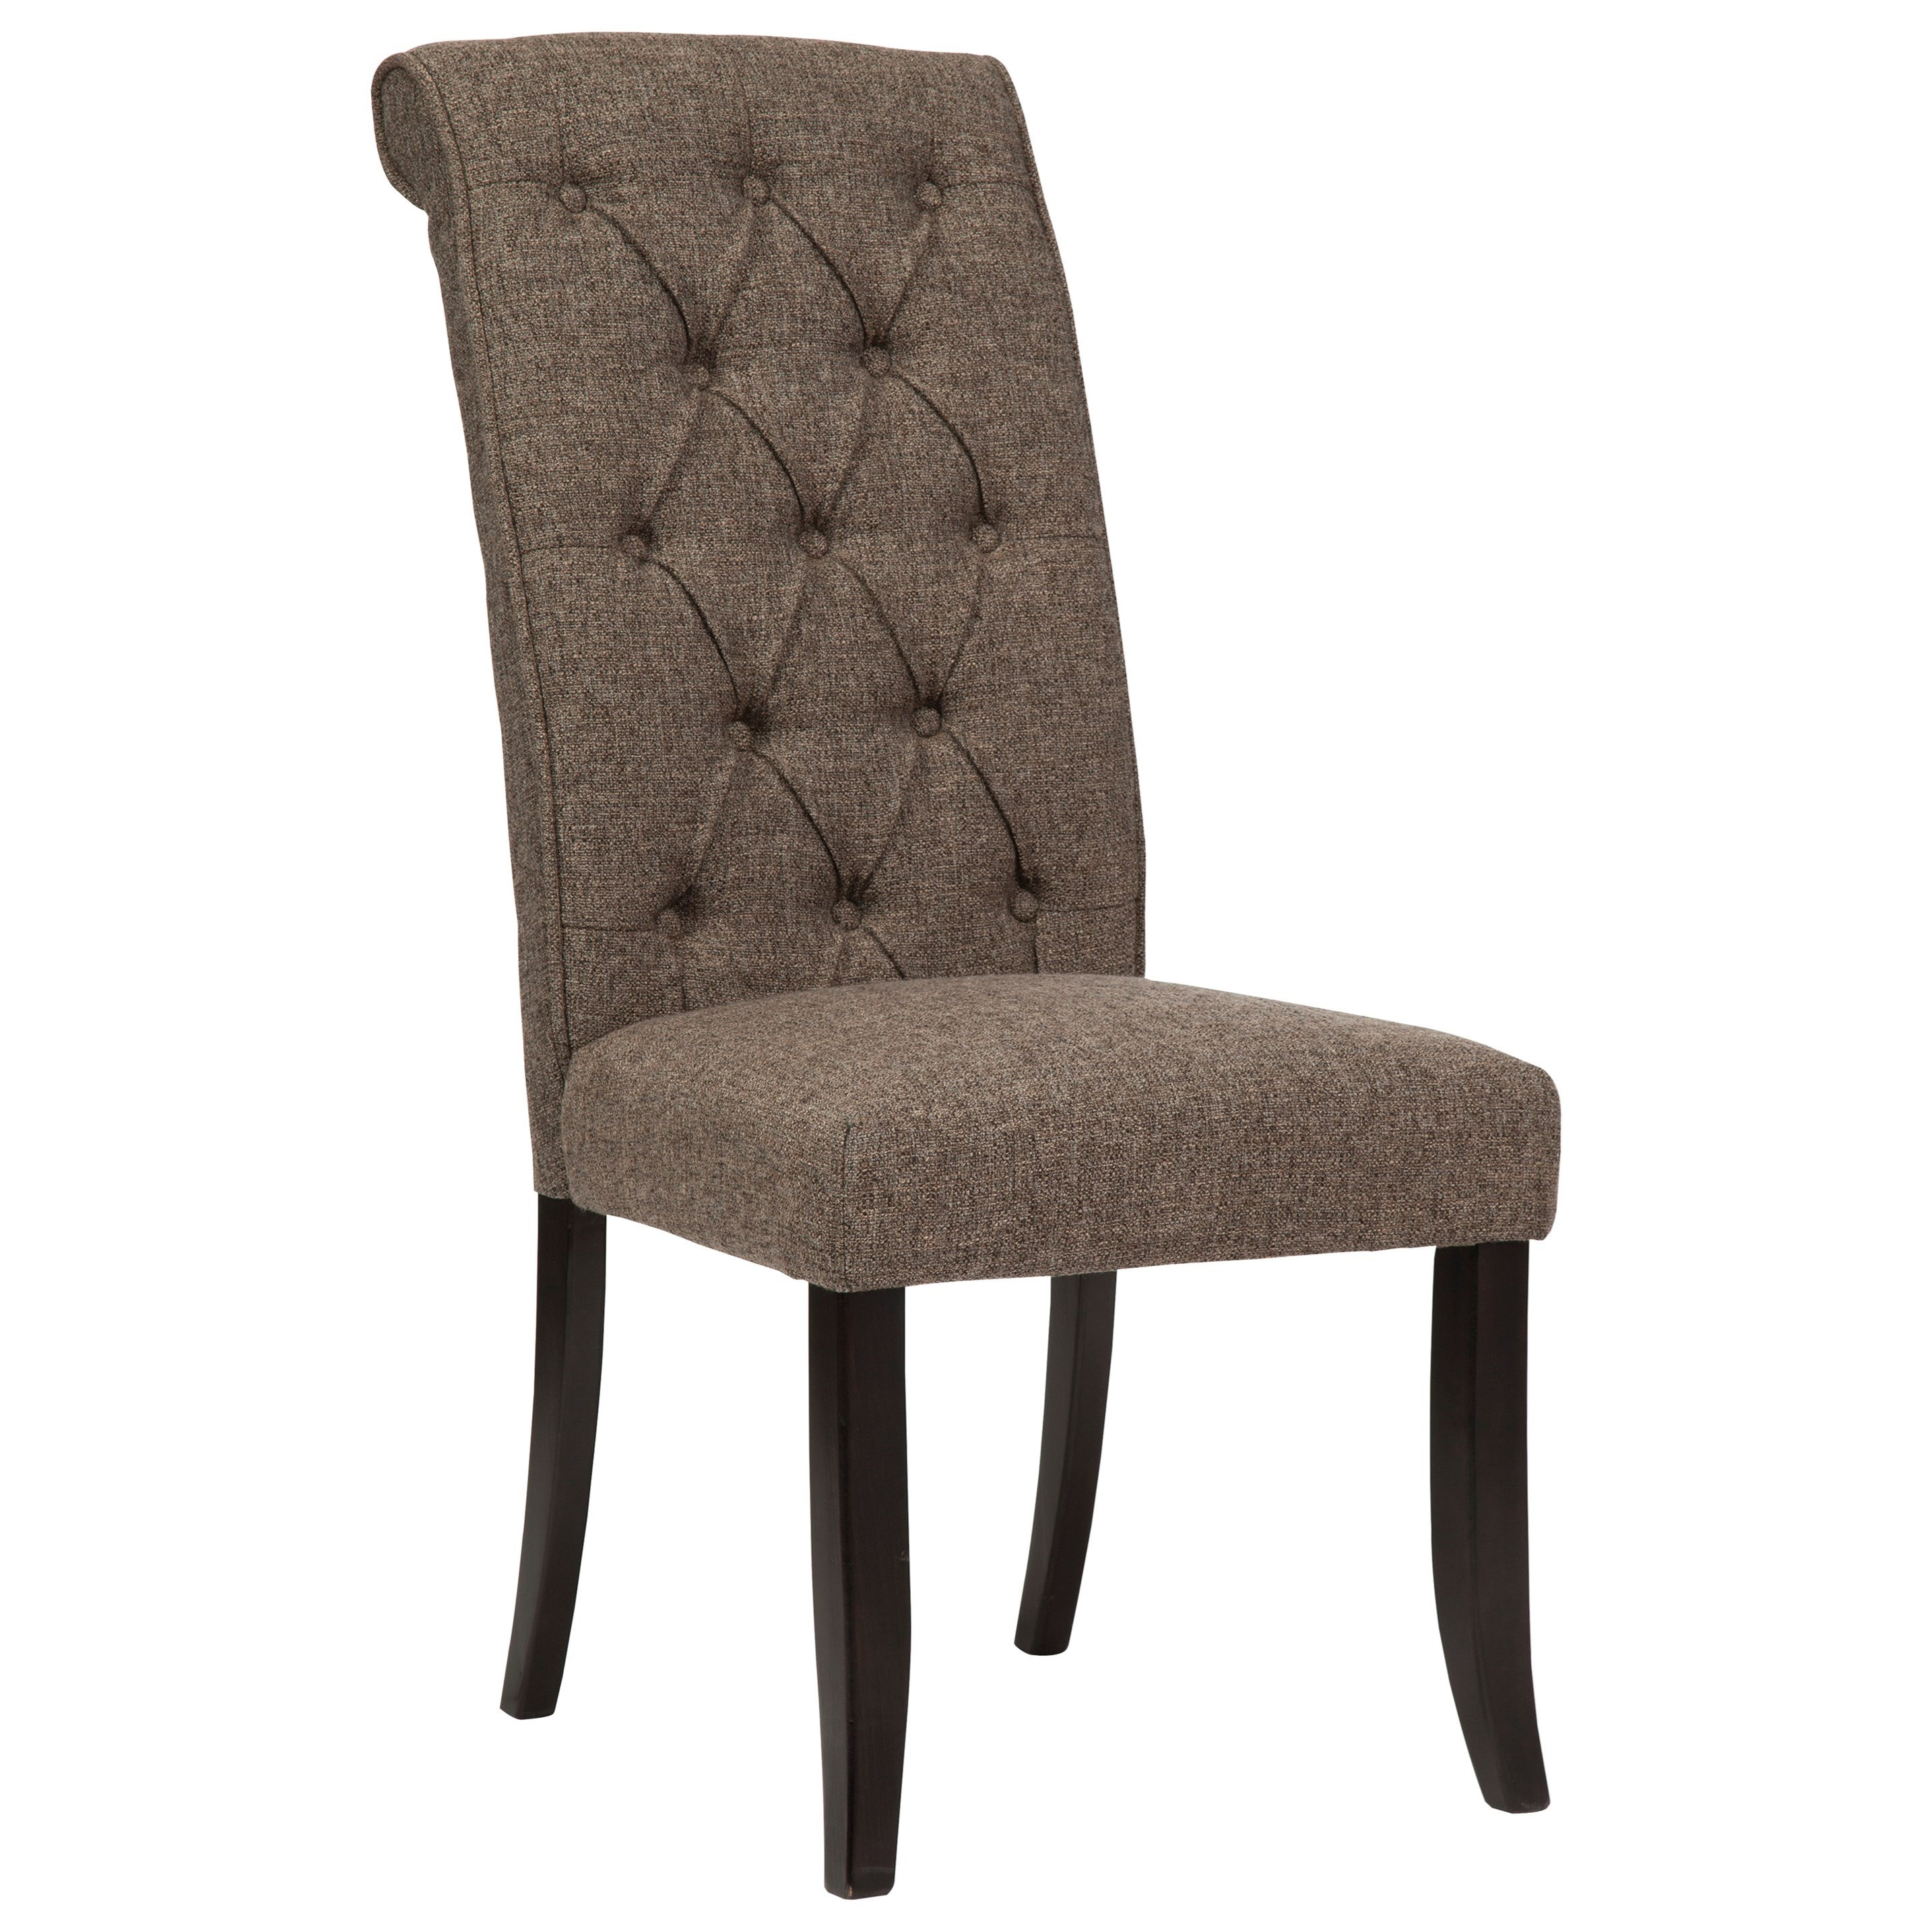 Upholstered Side Chairs Dining Upholstered Side Chair With Button Tufting And Roll